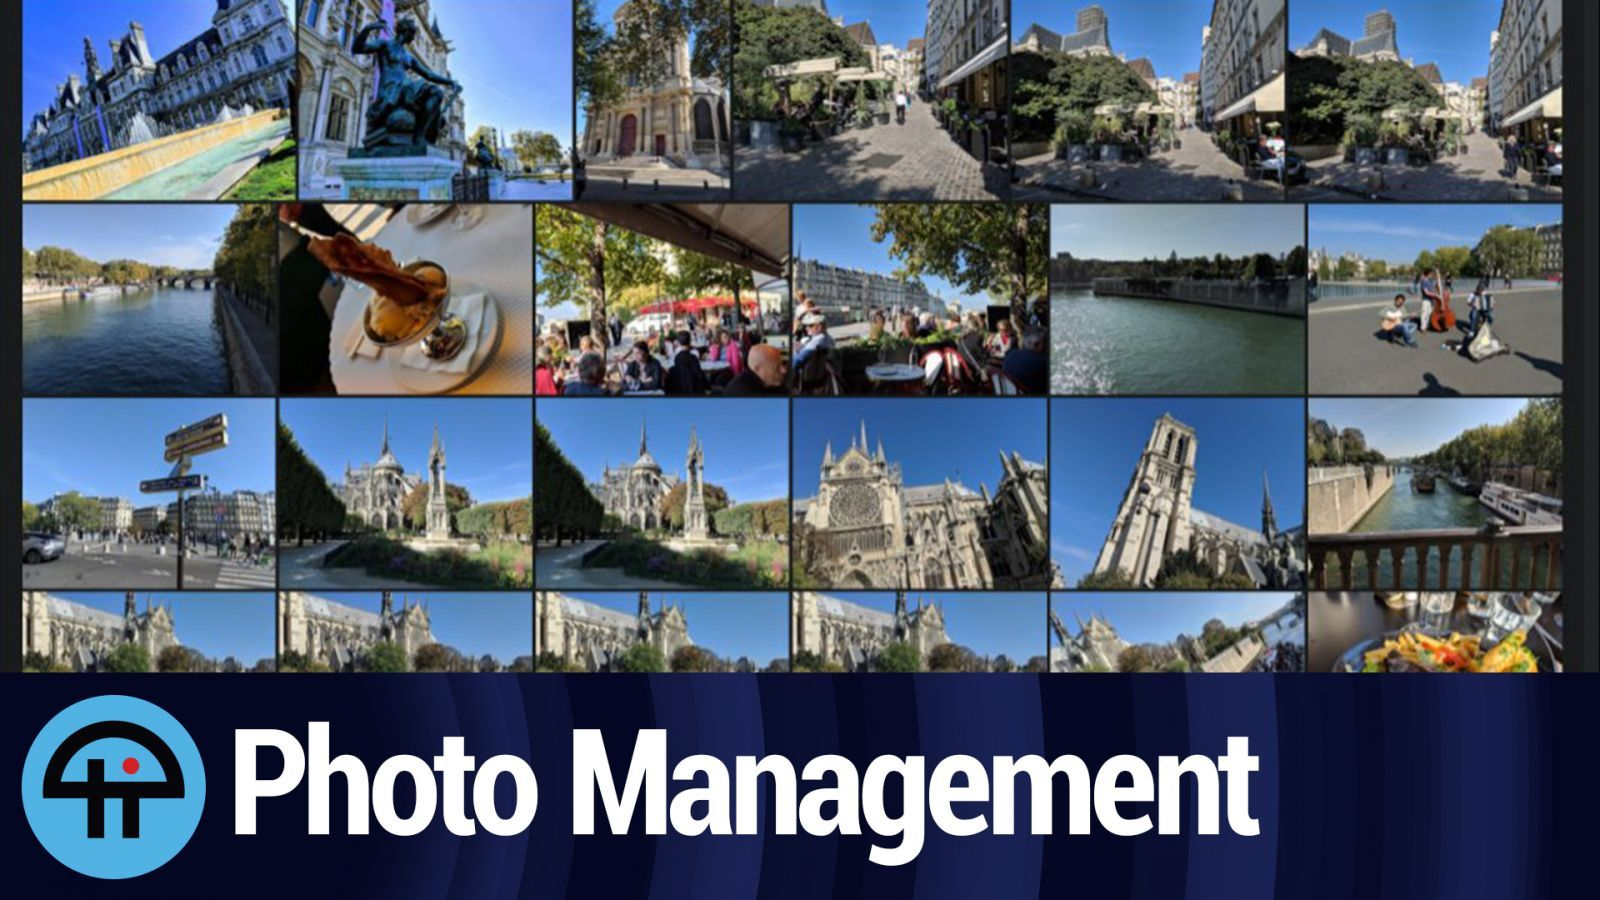 Paul and Mary Jo's Photo Management Strategies | TWiT Bits